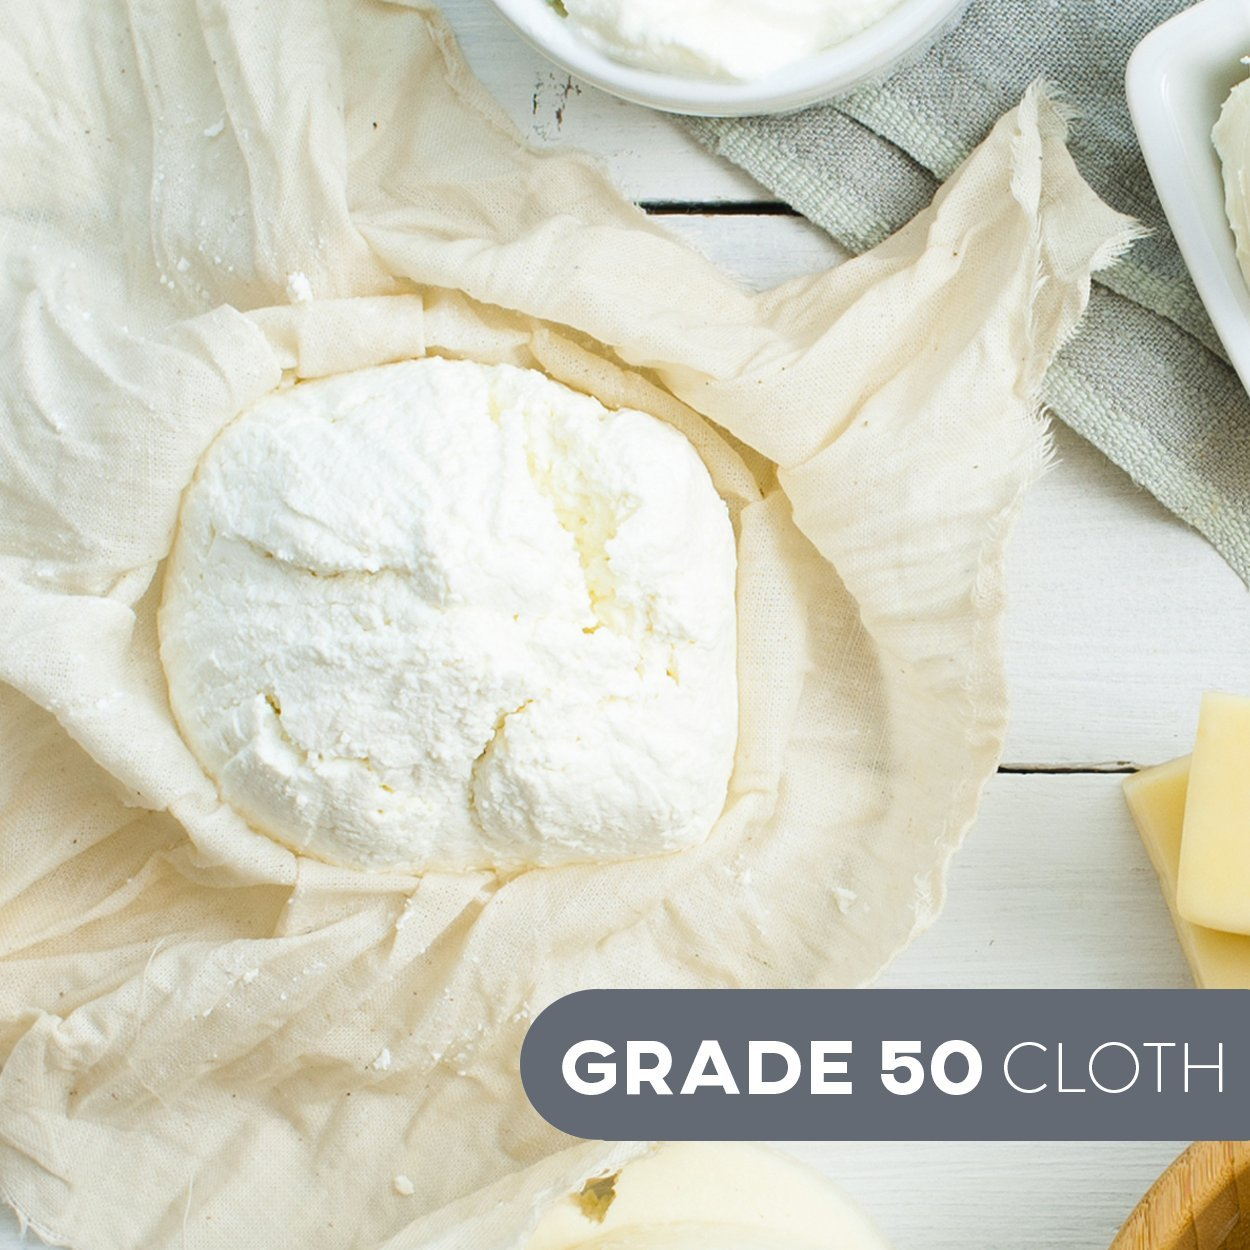 Cheesecloth and Cooking Twine - by Kitchen Gizmo, Grade 50 100% Unbleached Cotton (5 Yards/45 Sq. Feet) Cheese Cloth for Straining with 220 Ft Butchers Twine by Kitchen Gizmo (Image #7)